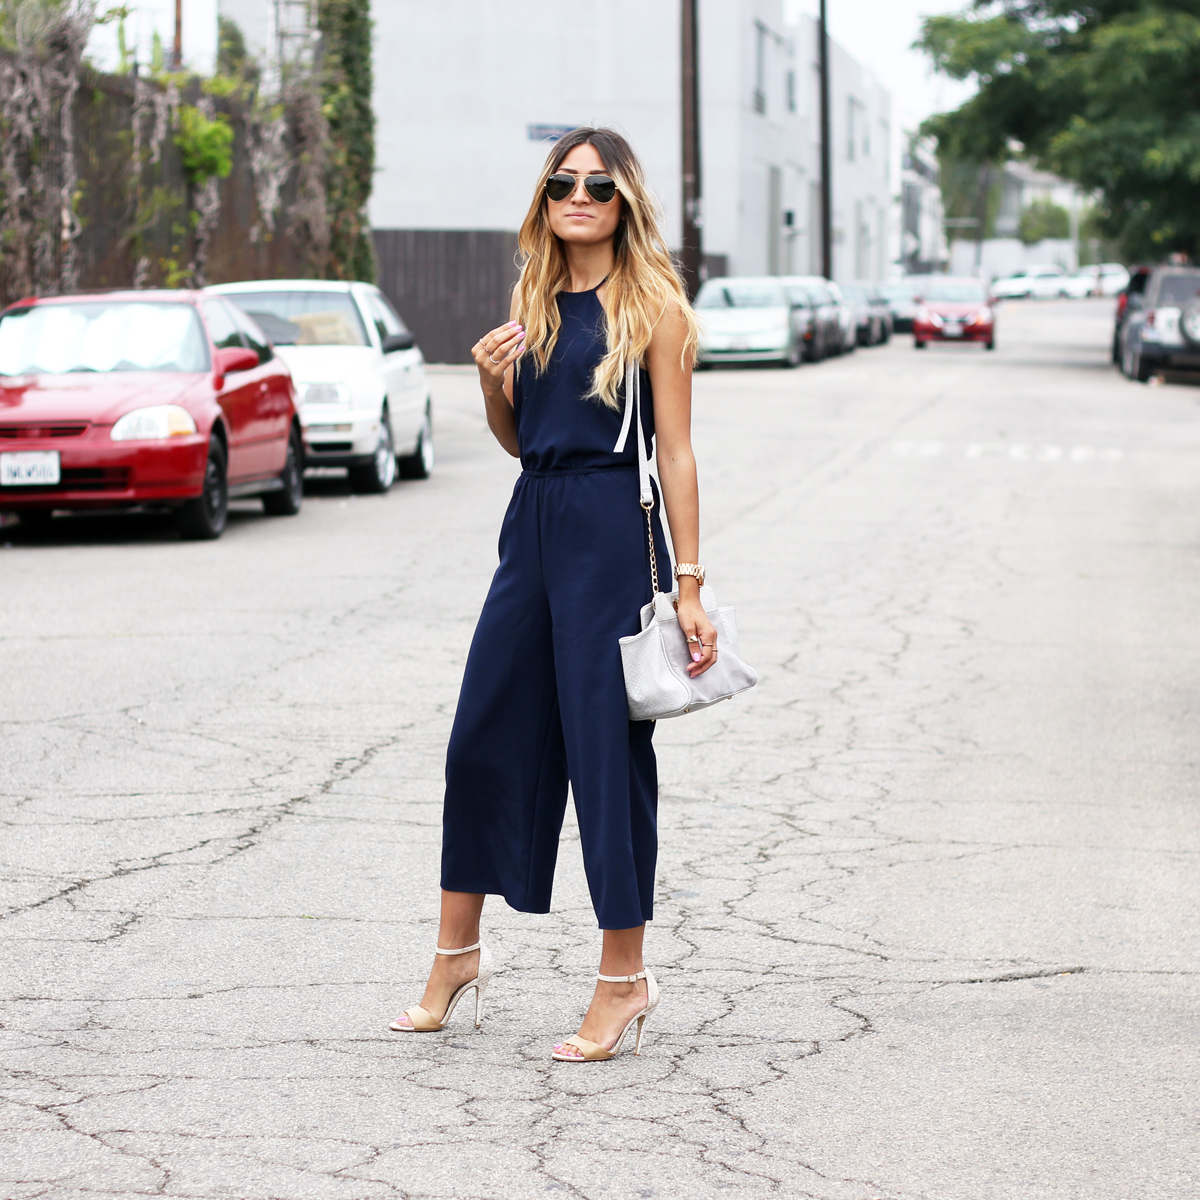 NYFW, Outfit, Inspiration, Daily Look, StreetStyle, Melrodstyle, Blogger